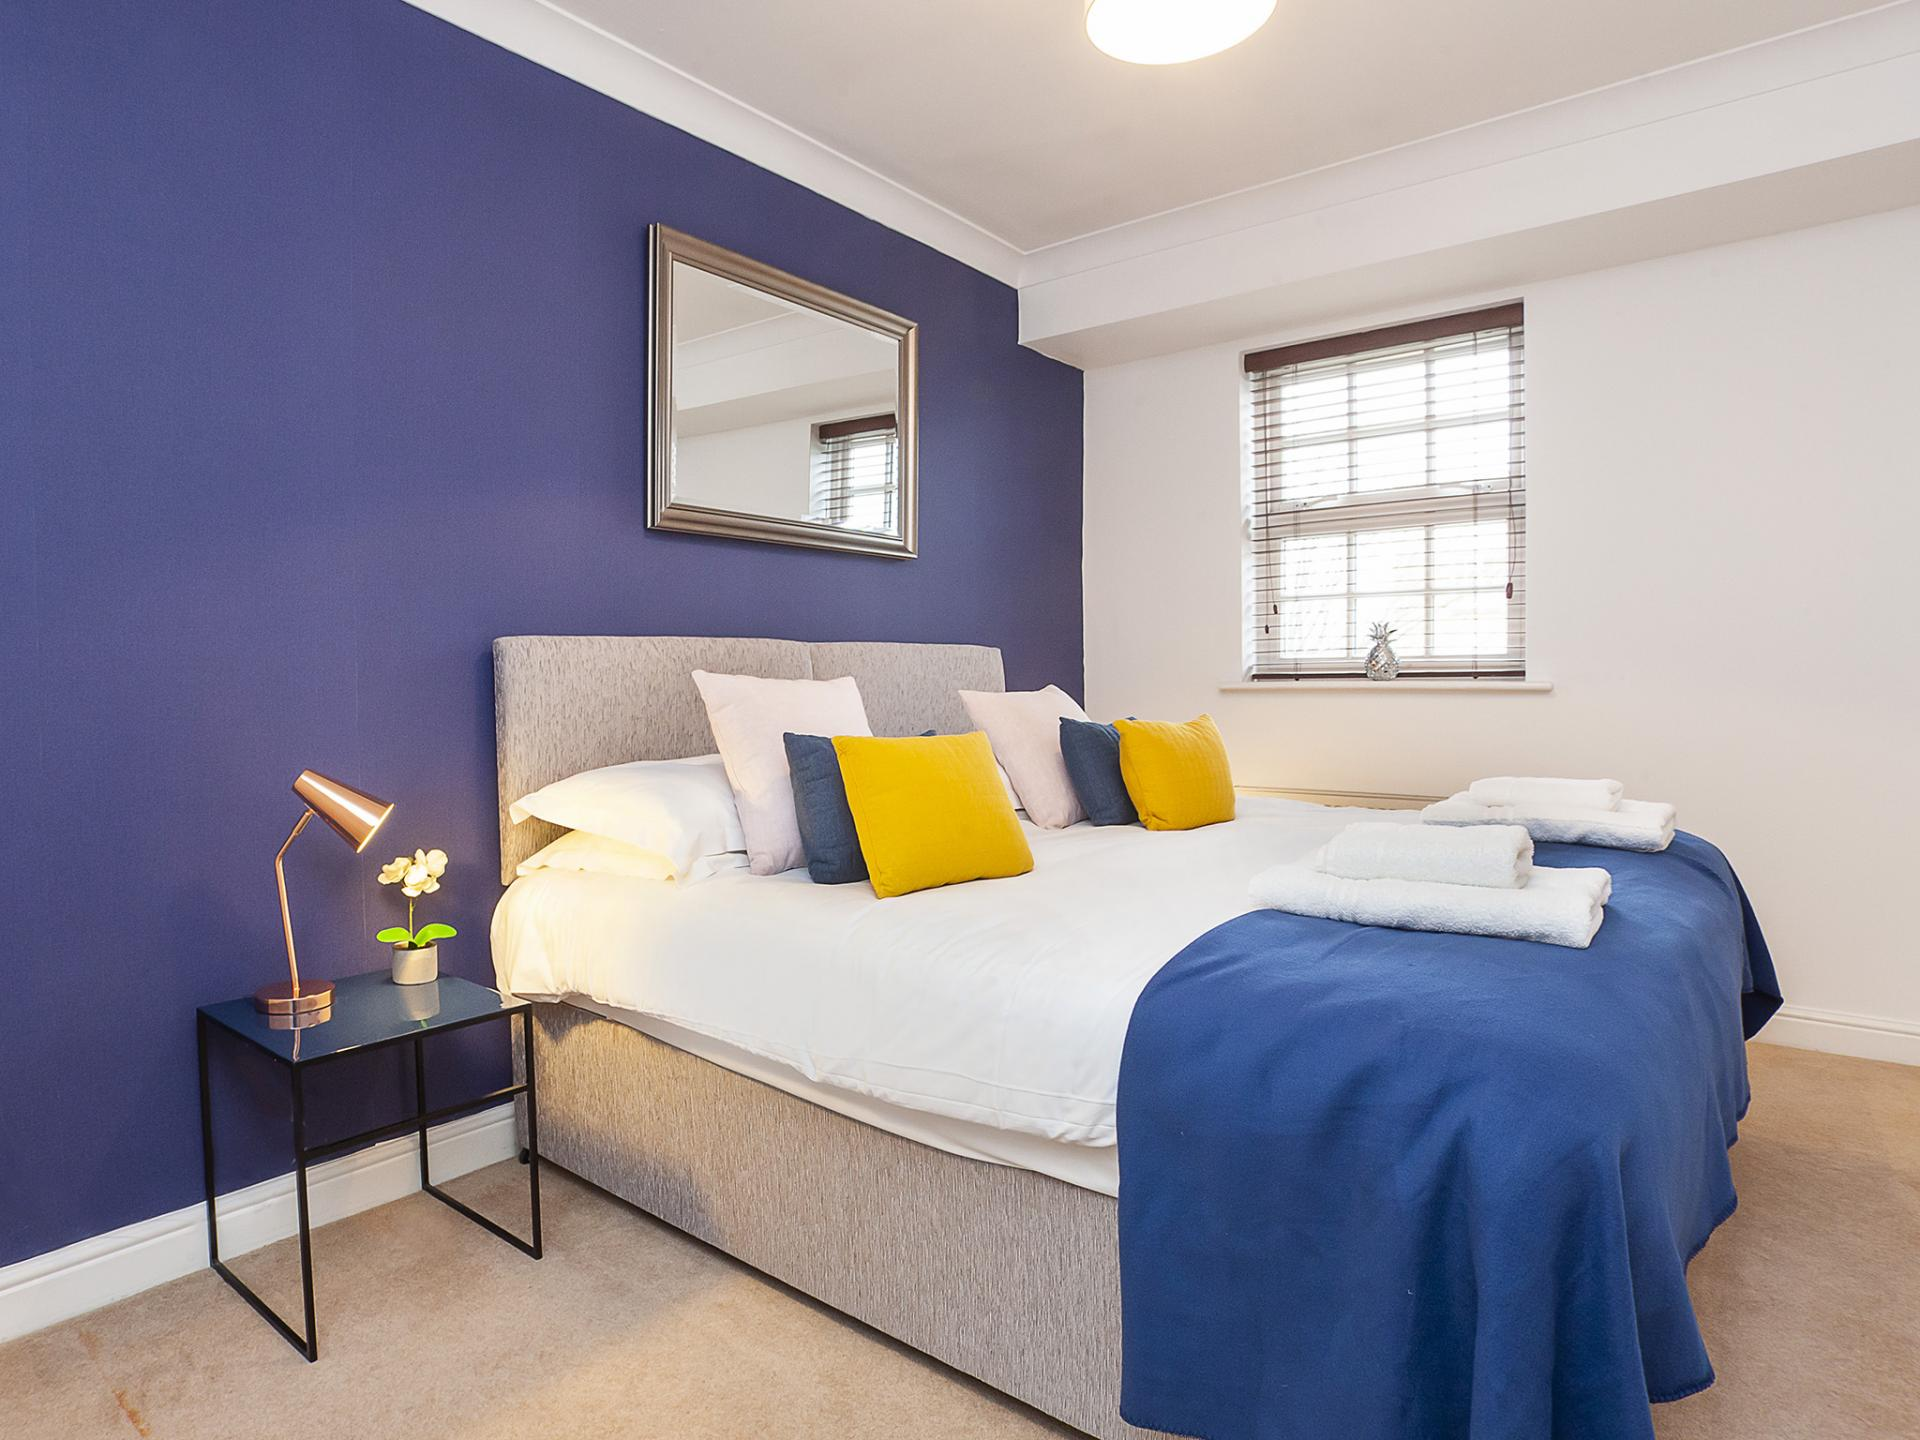 Blue Bedroom at The Station apartment, Centre, York - Citybase Apartments